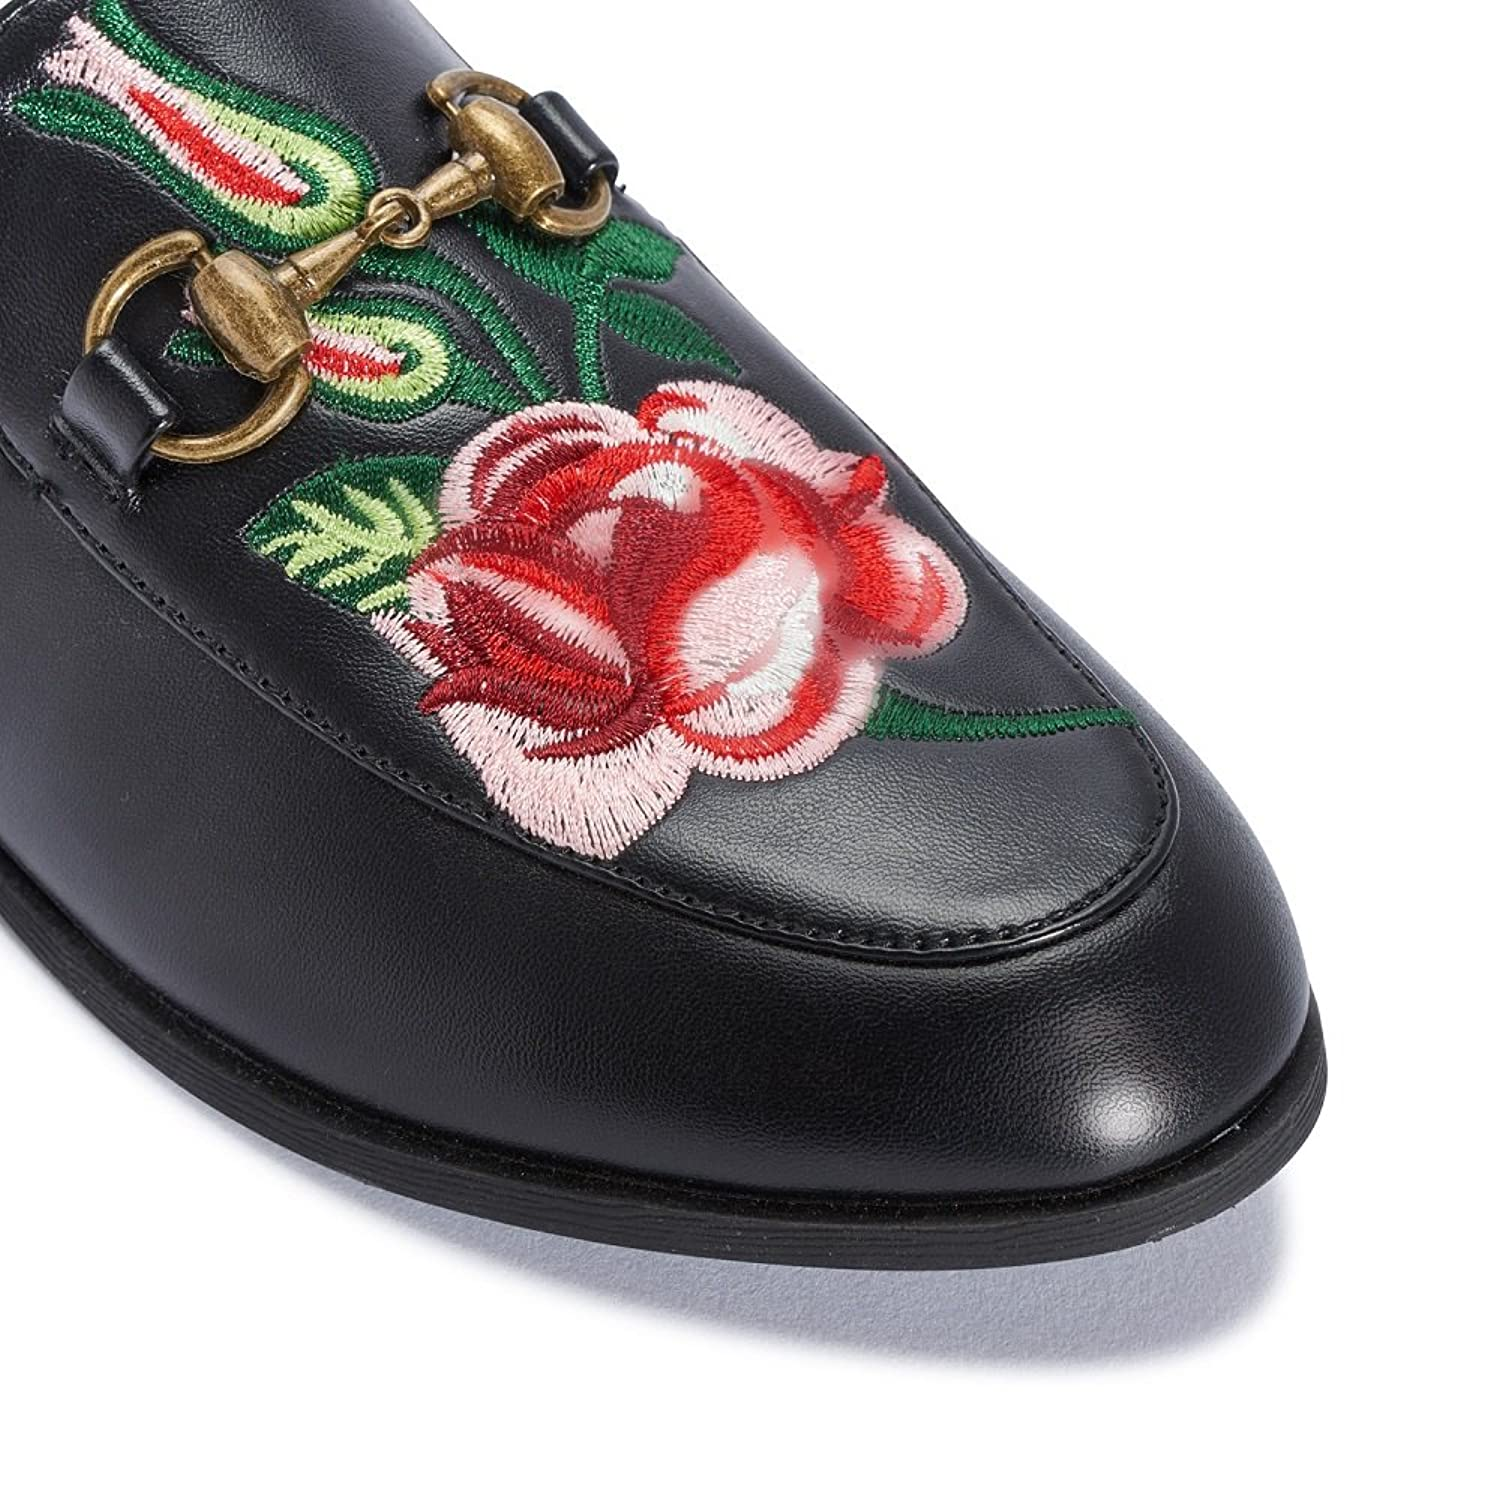 WOMENS BLACK EMBROIDERY ROSE PRINT LADIES FLOWER SLIDERS CASUAL MULES SHOES:  Amazon.co.uk: Shoes & Bags